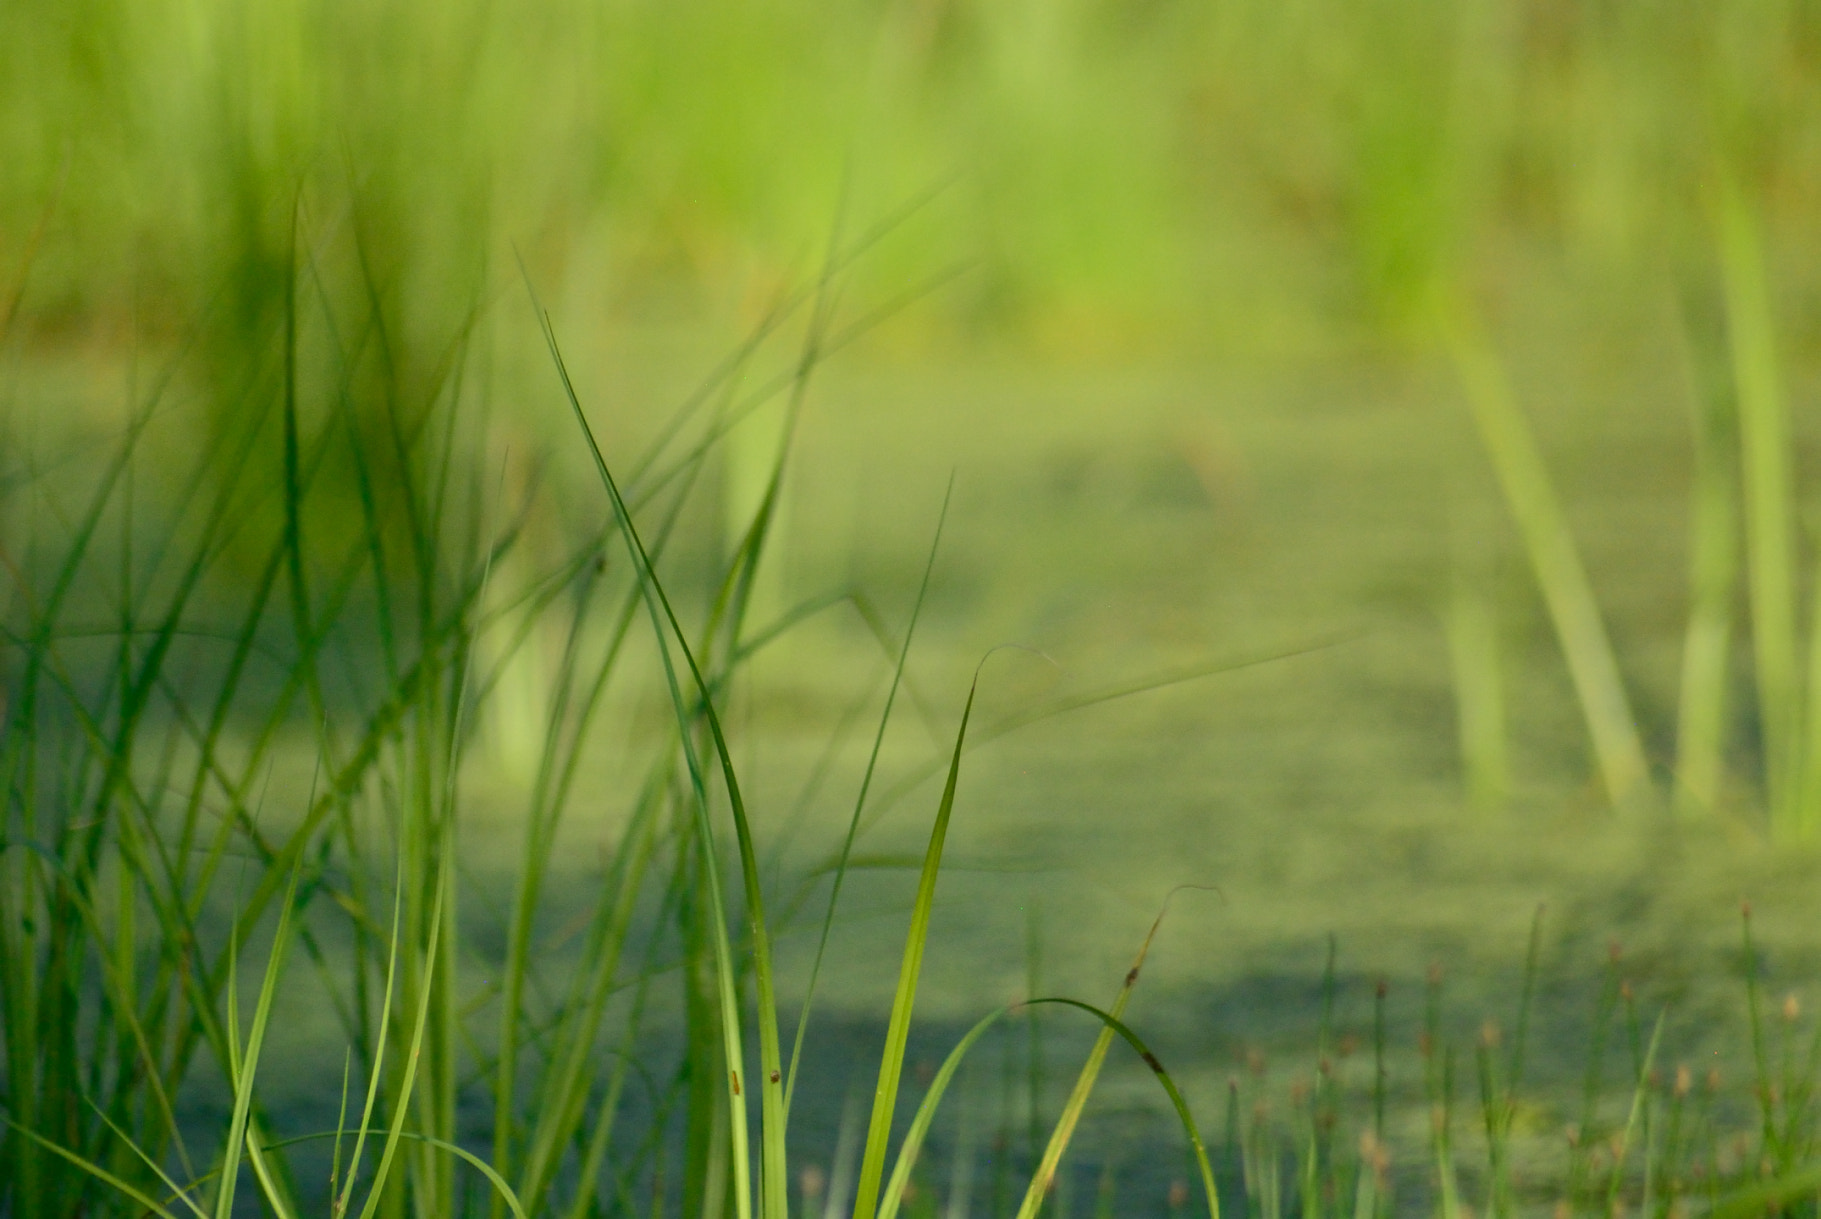 Photograph Swamp Grass by Anastasia Hill on 500px